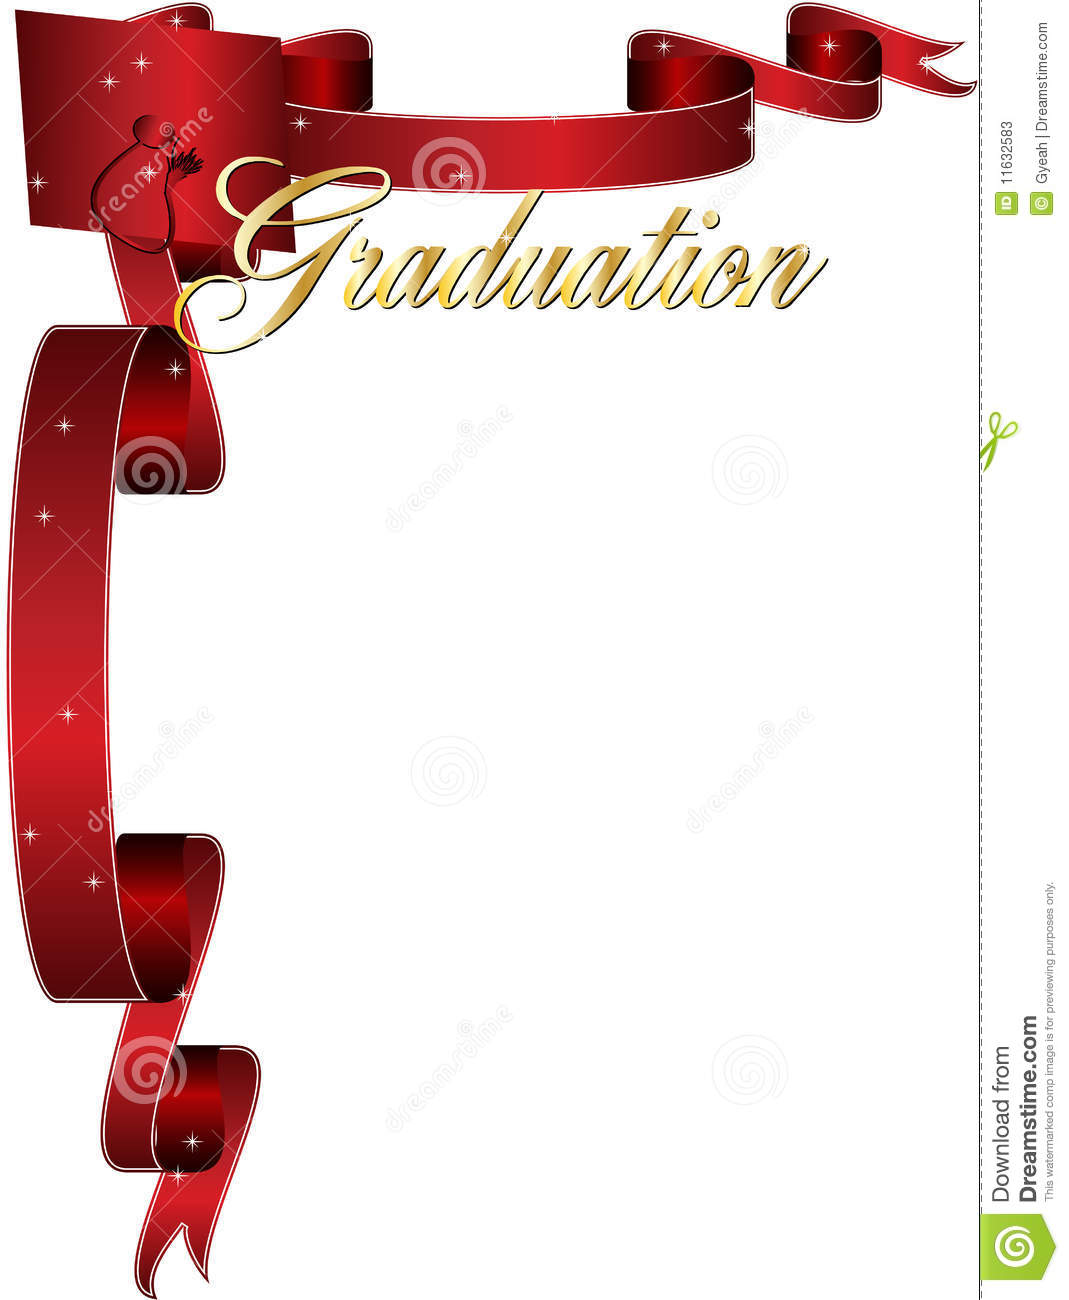 Happy graduation frame border with red